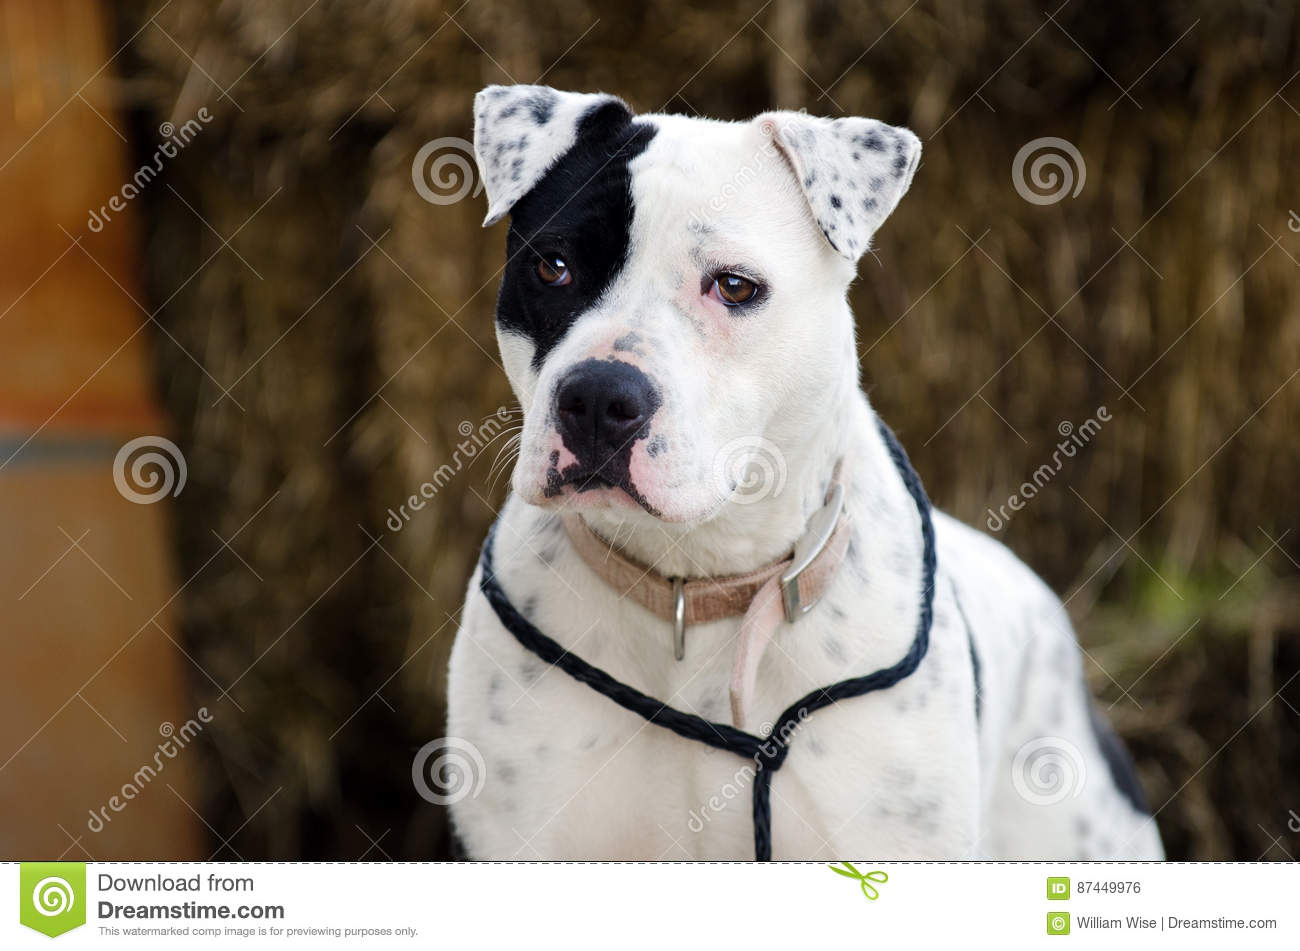 White Dog With Black Eye Patch